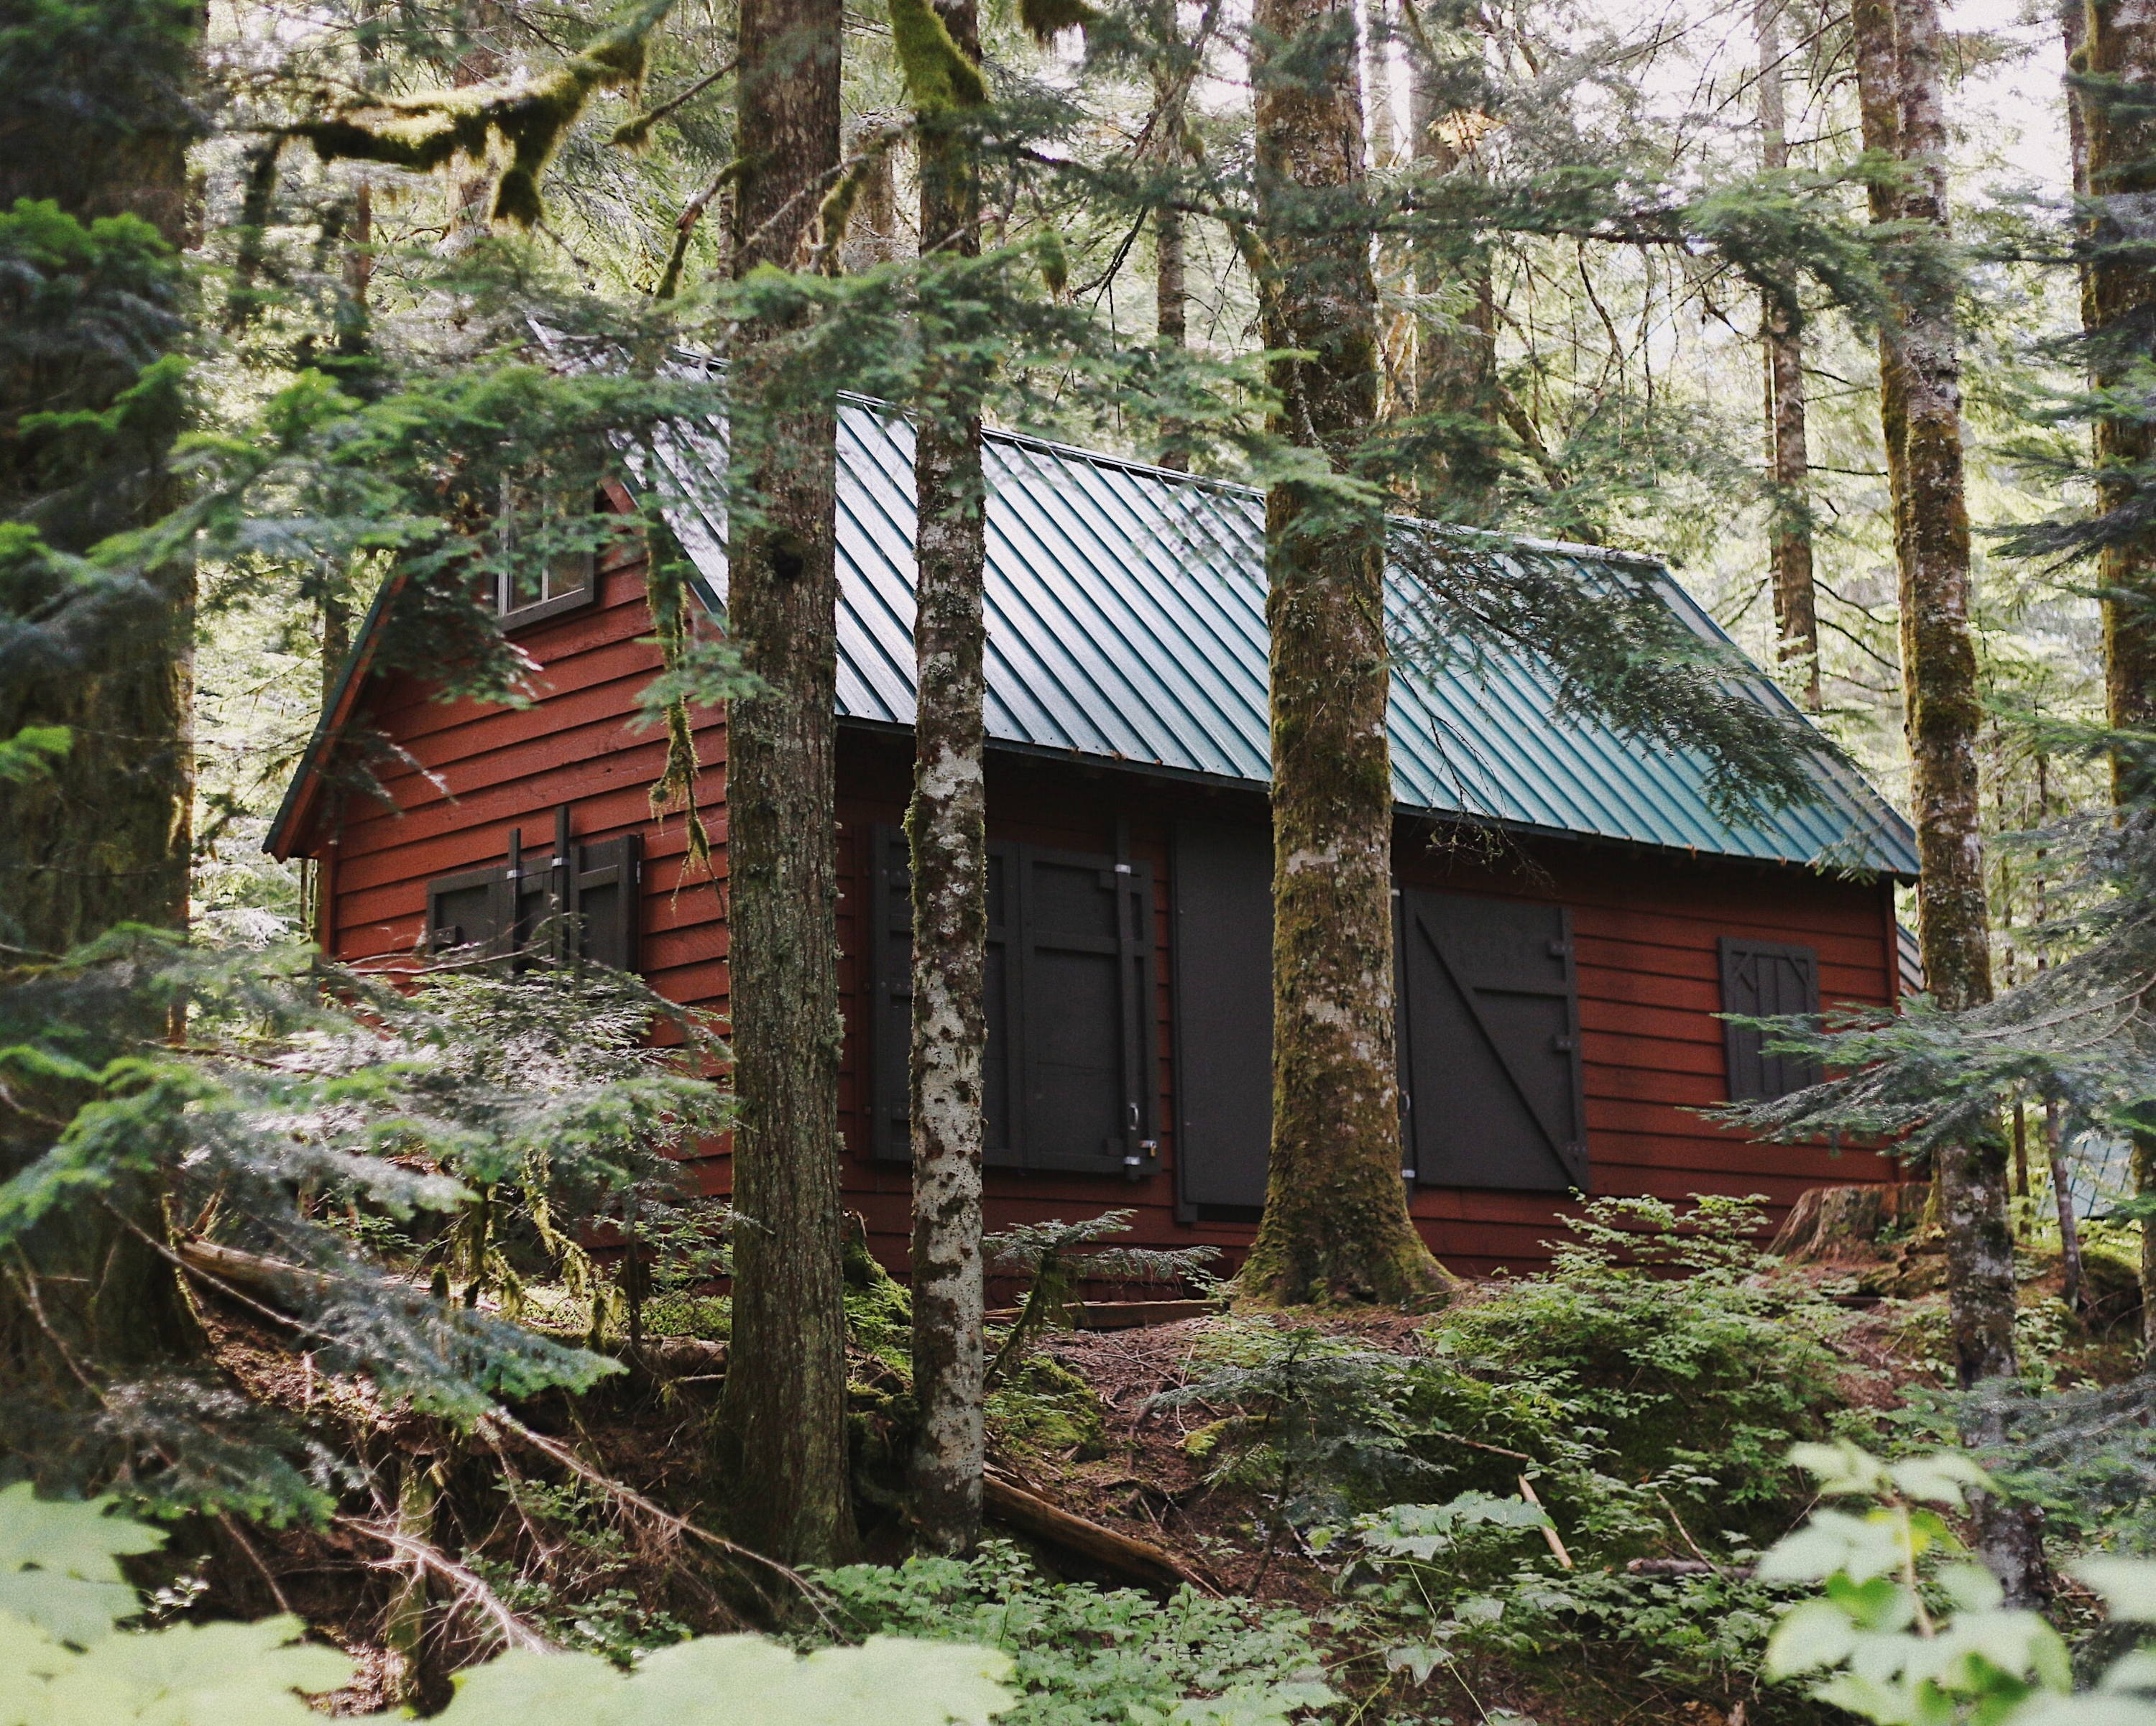 living off the grid in the woods